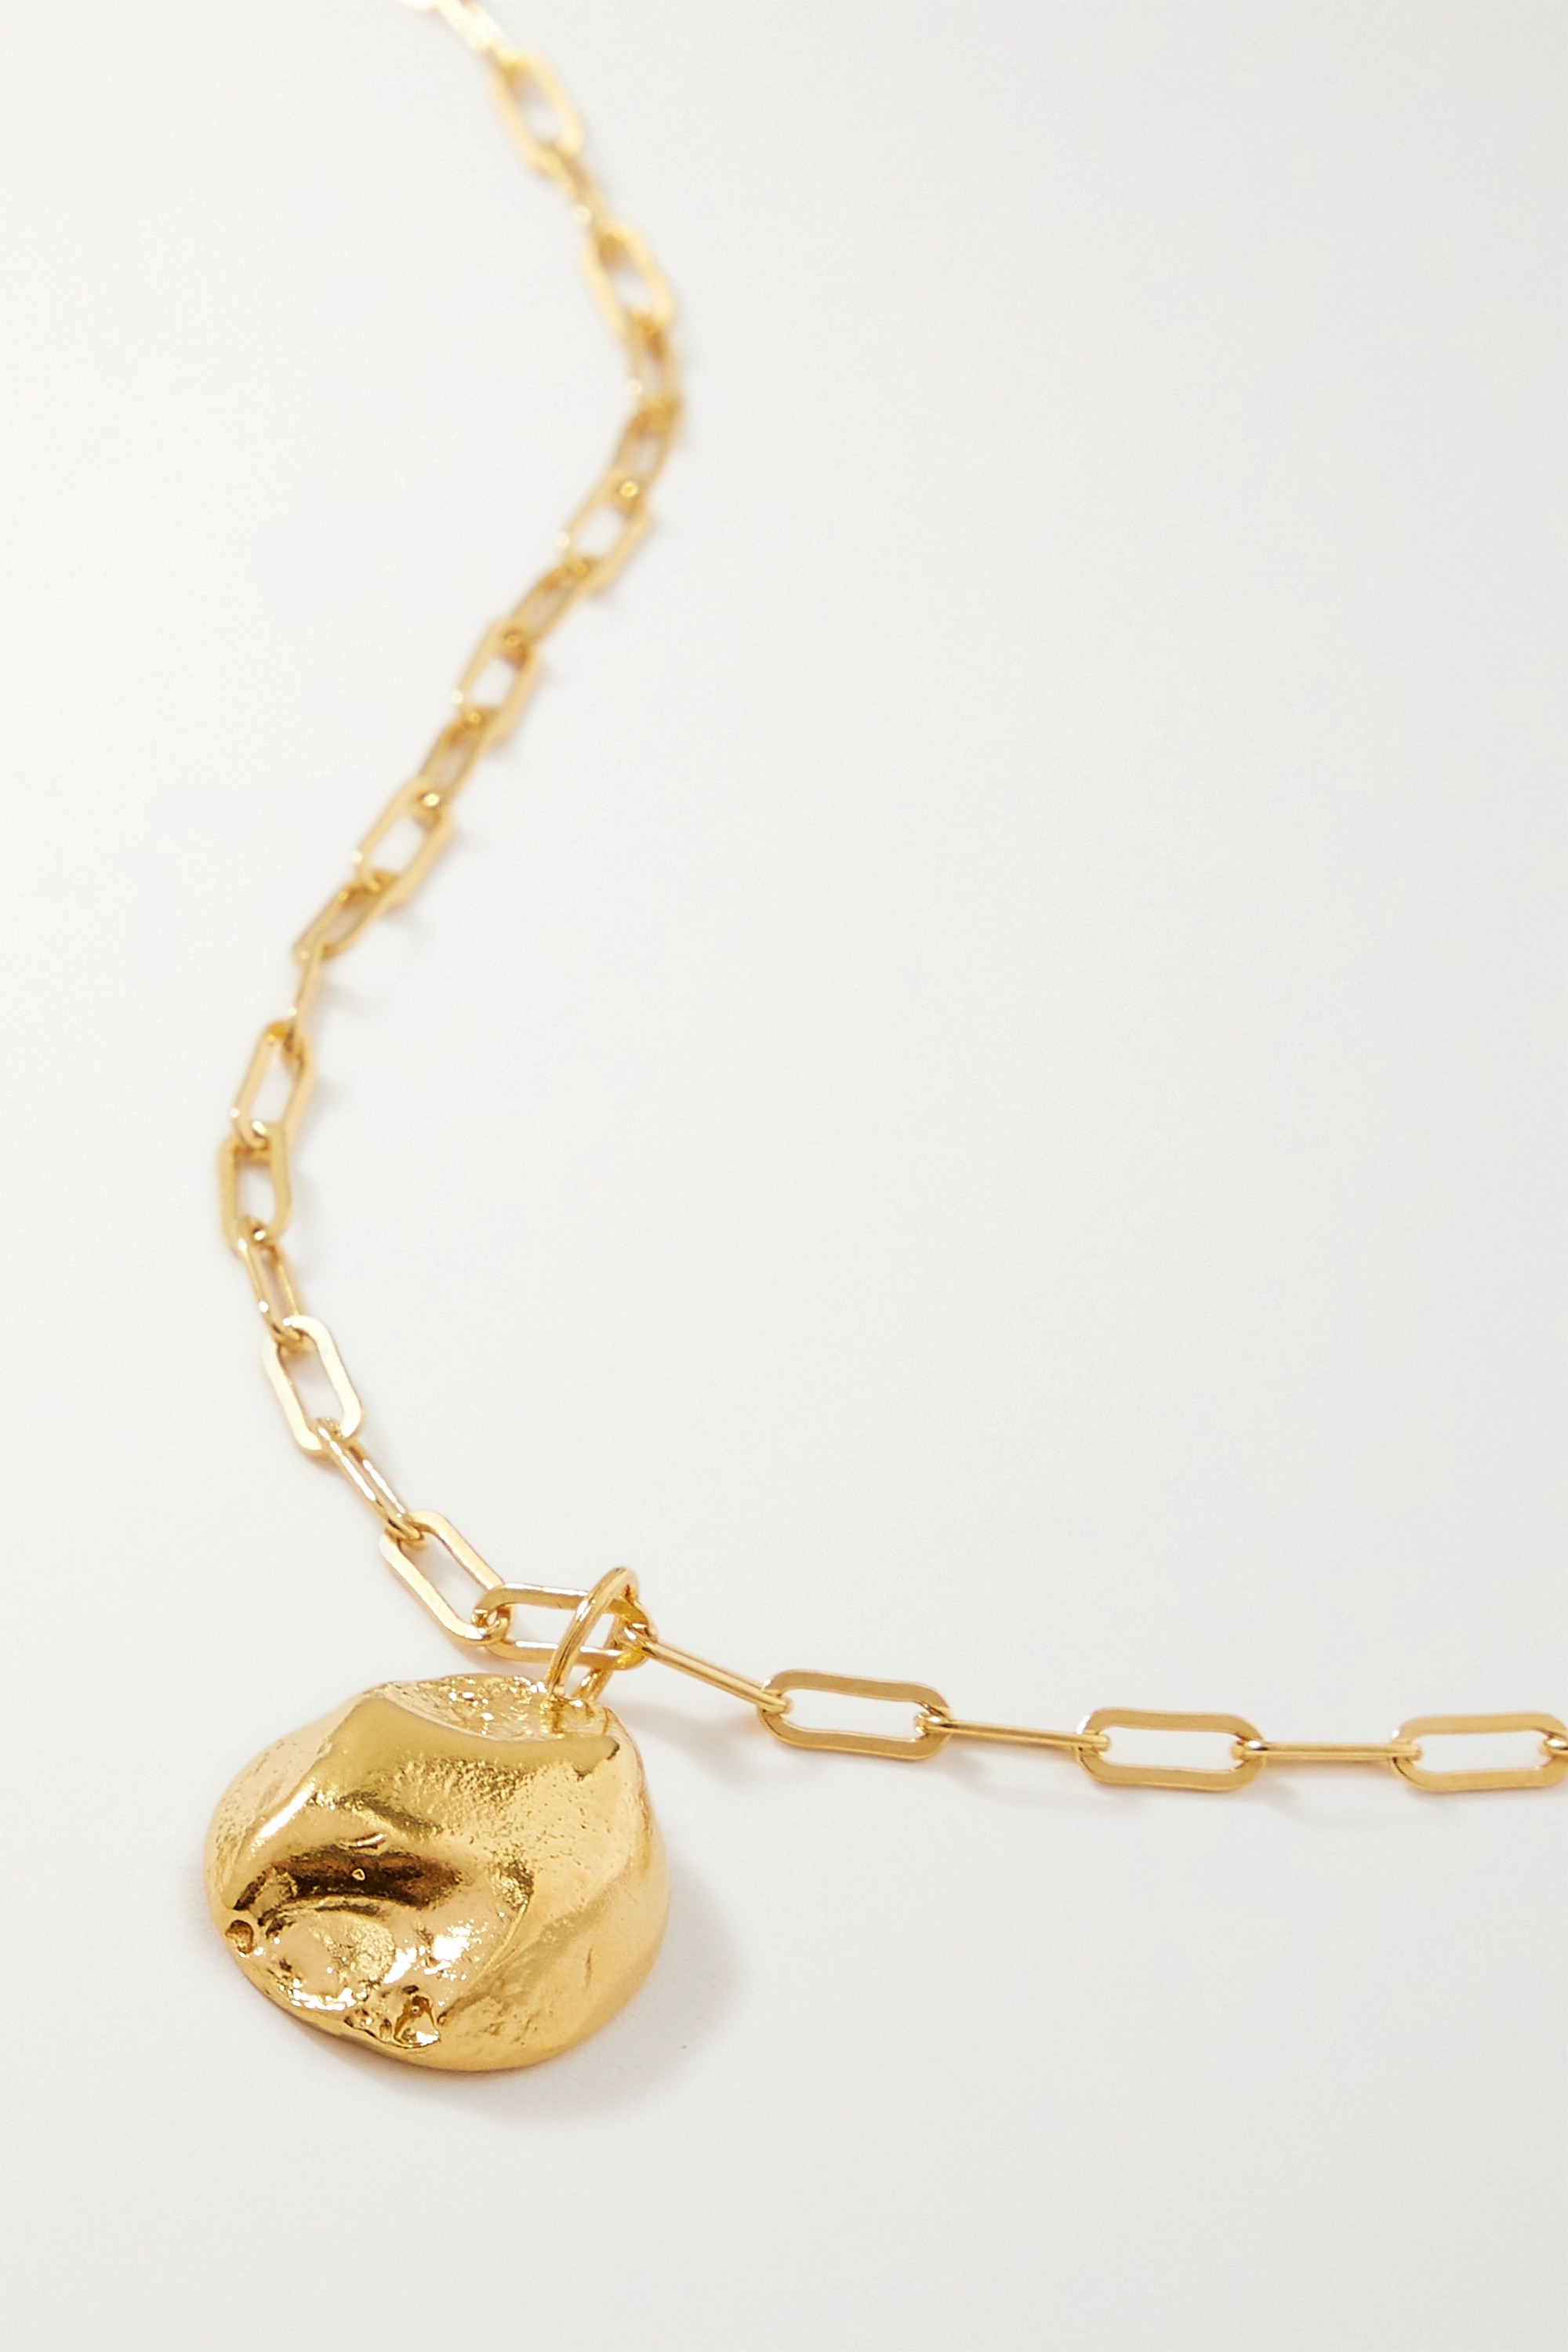 Alighieri - The Minerva gold-plated necklace